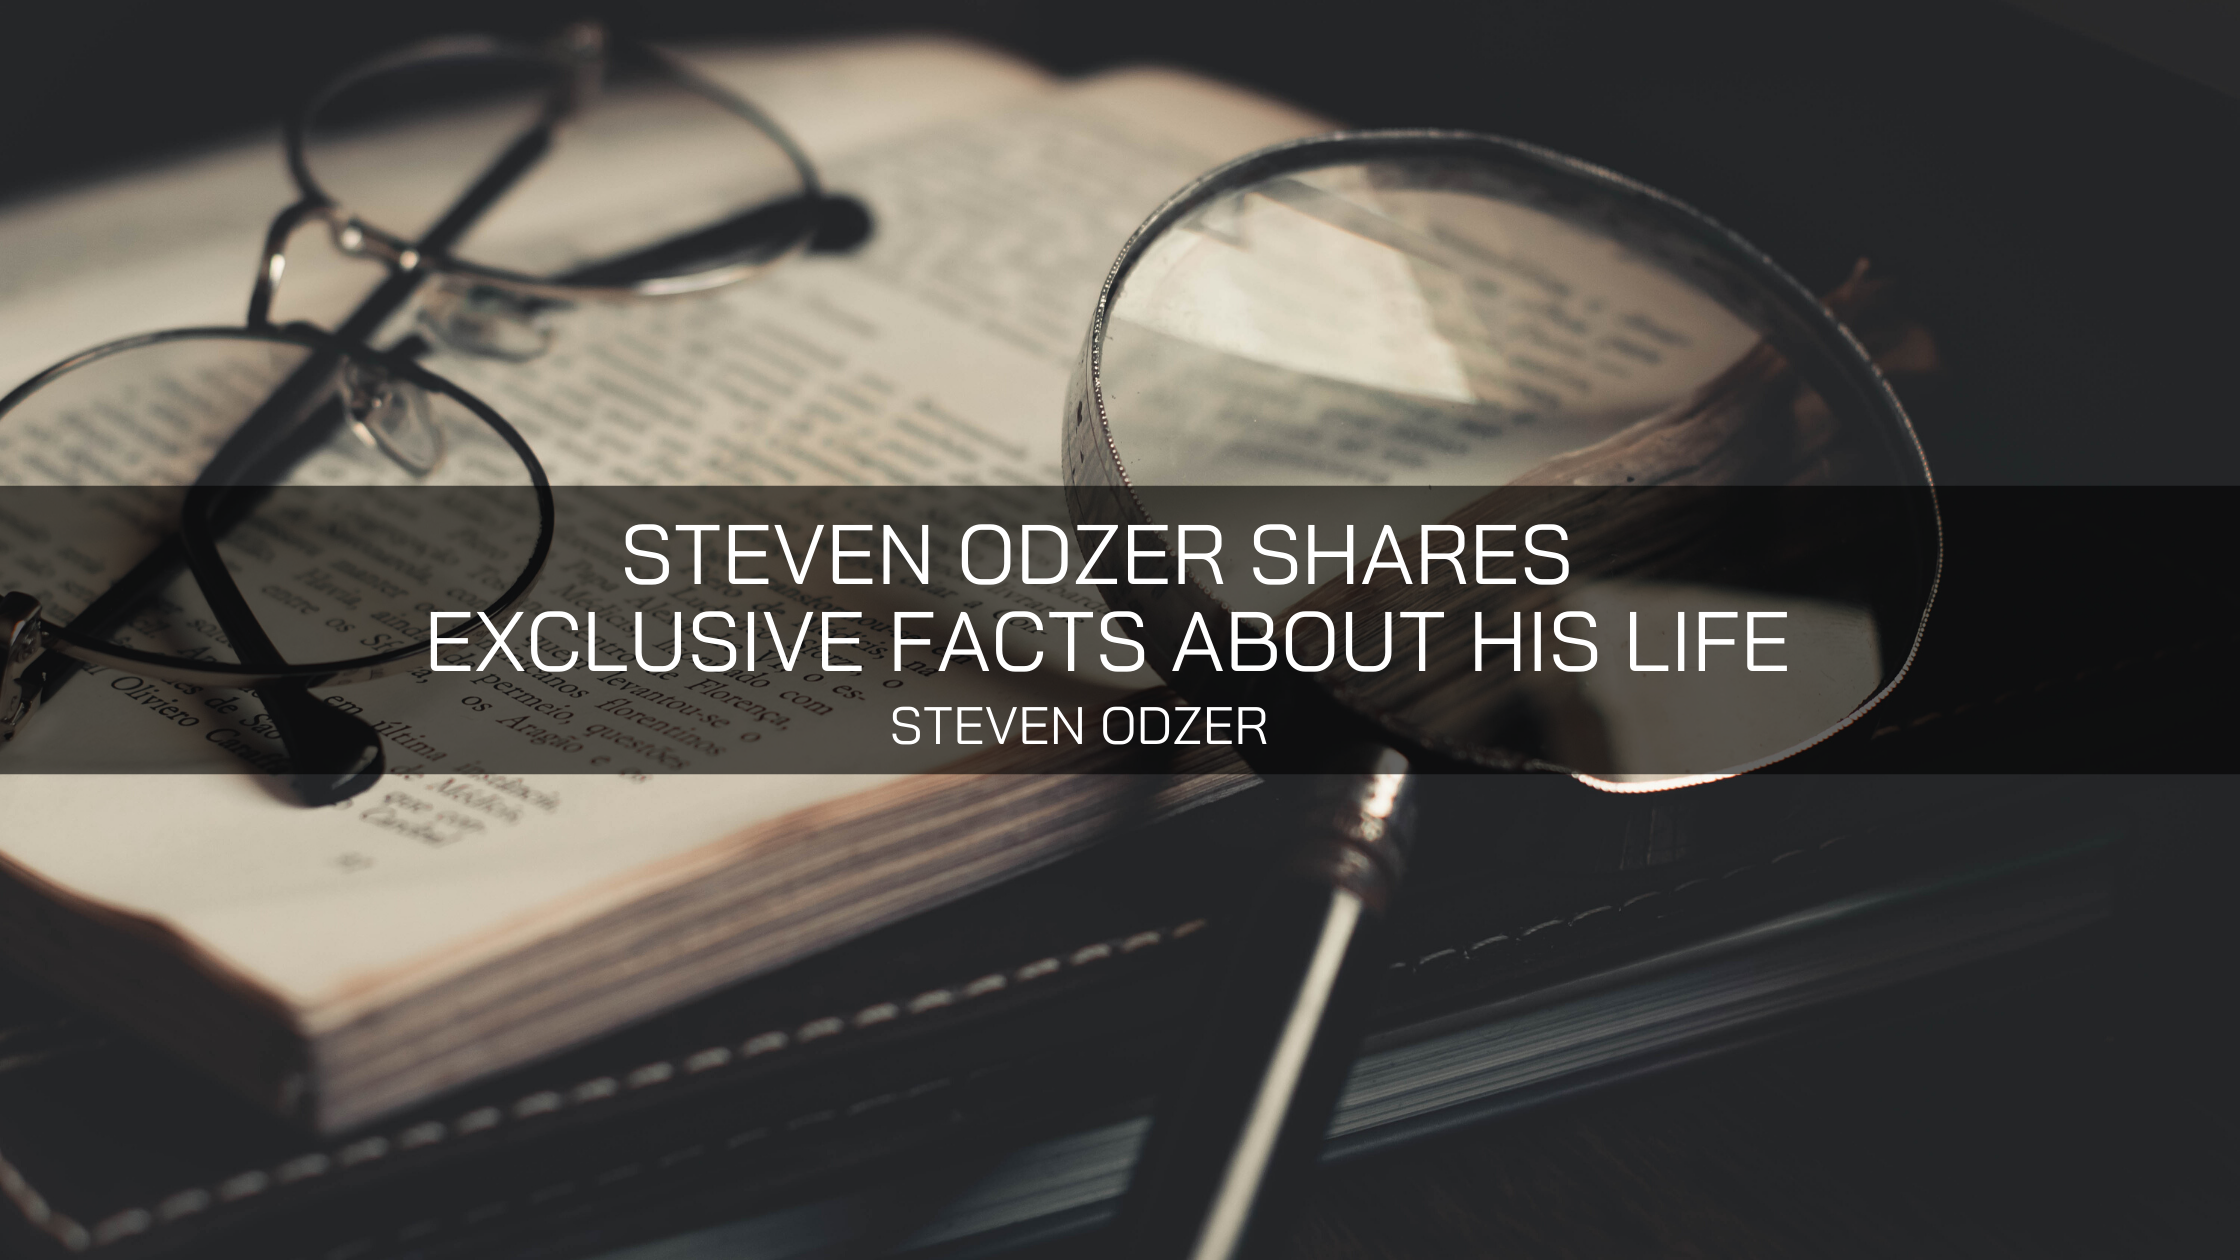 Steven Odzer Shares Exclusive Facts About His Life